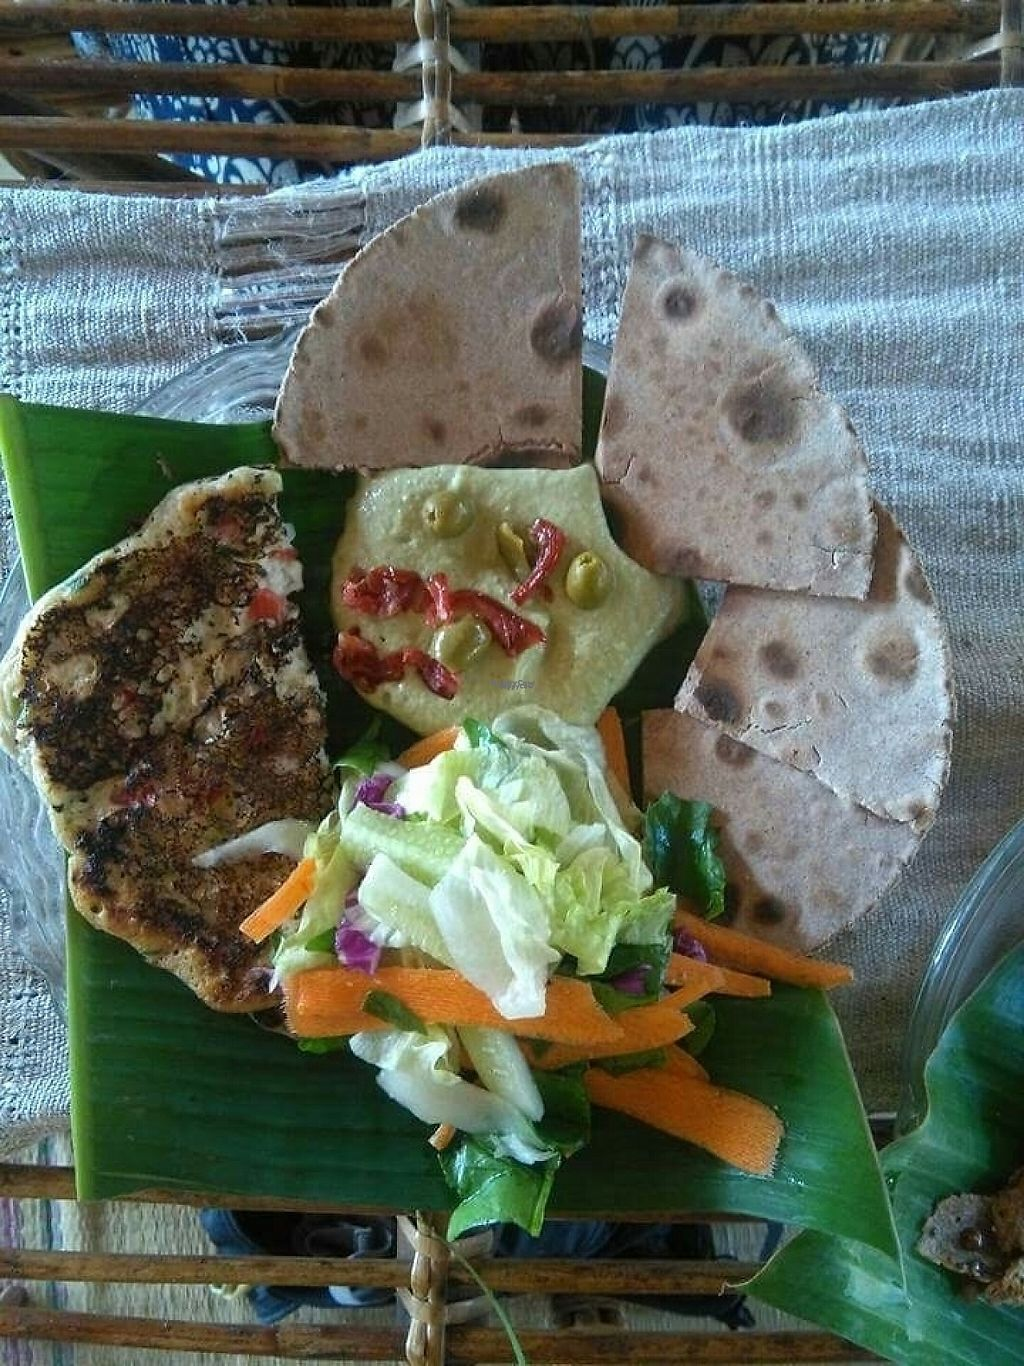 """Photo of Dharma Swasti  by <a href=""""/members/profile/HappyVeganCam"""">HappyVeganCam</a> <br/>Vegan chickpea omelette with hummus and gluten free bread <br/> December 20, 2016  - <a href='/contact/abuse/image/81096/203132'>Report</a>"""